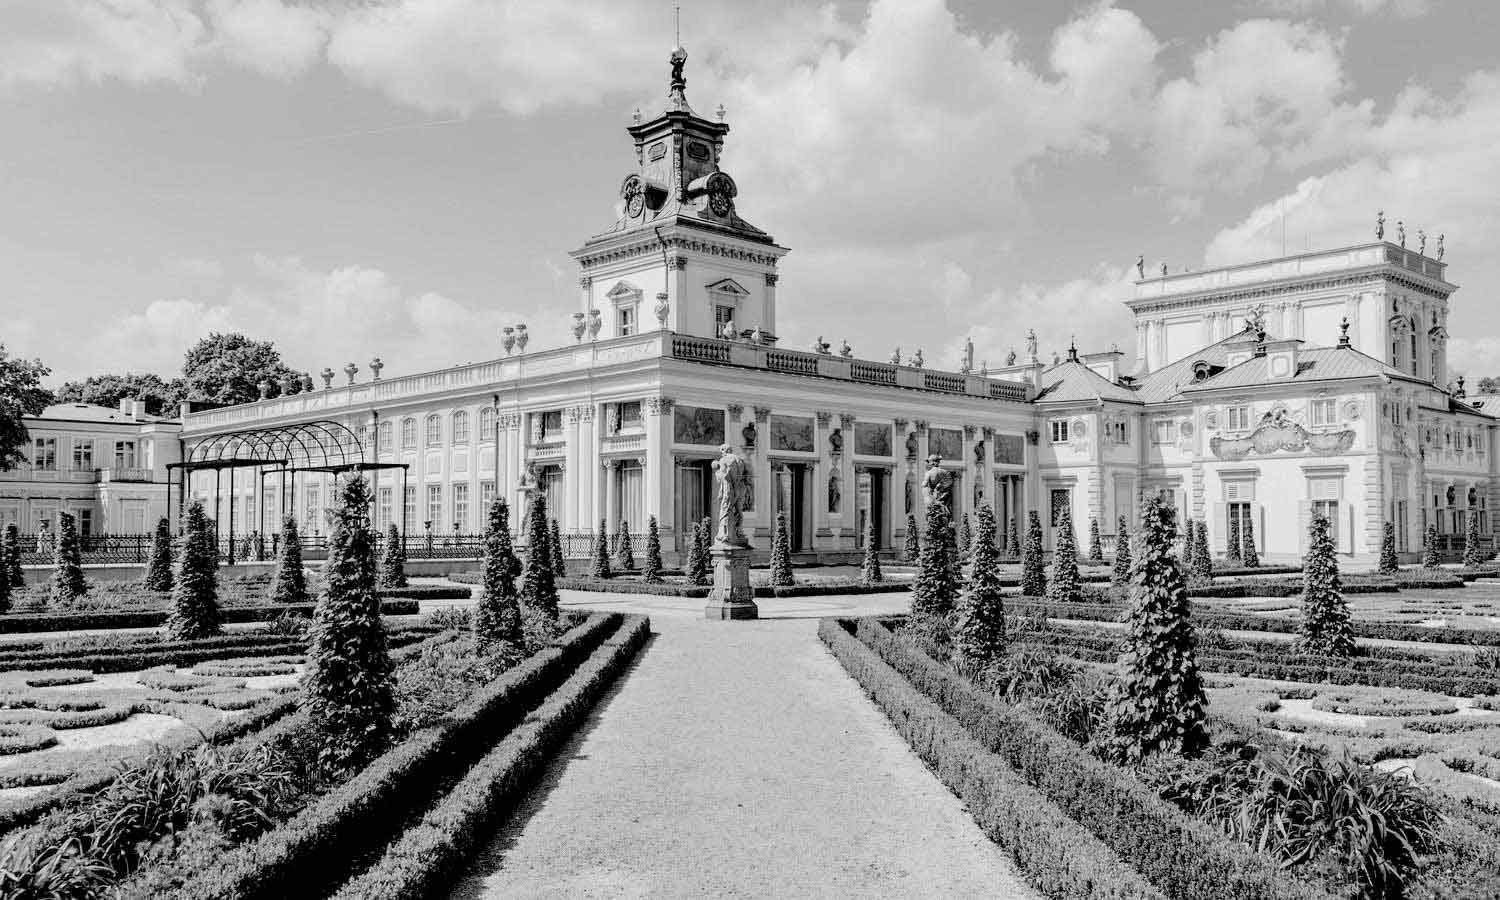 Facade view of the royal wilanow palace in baroque style